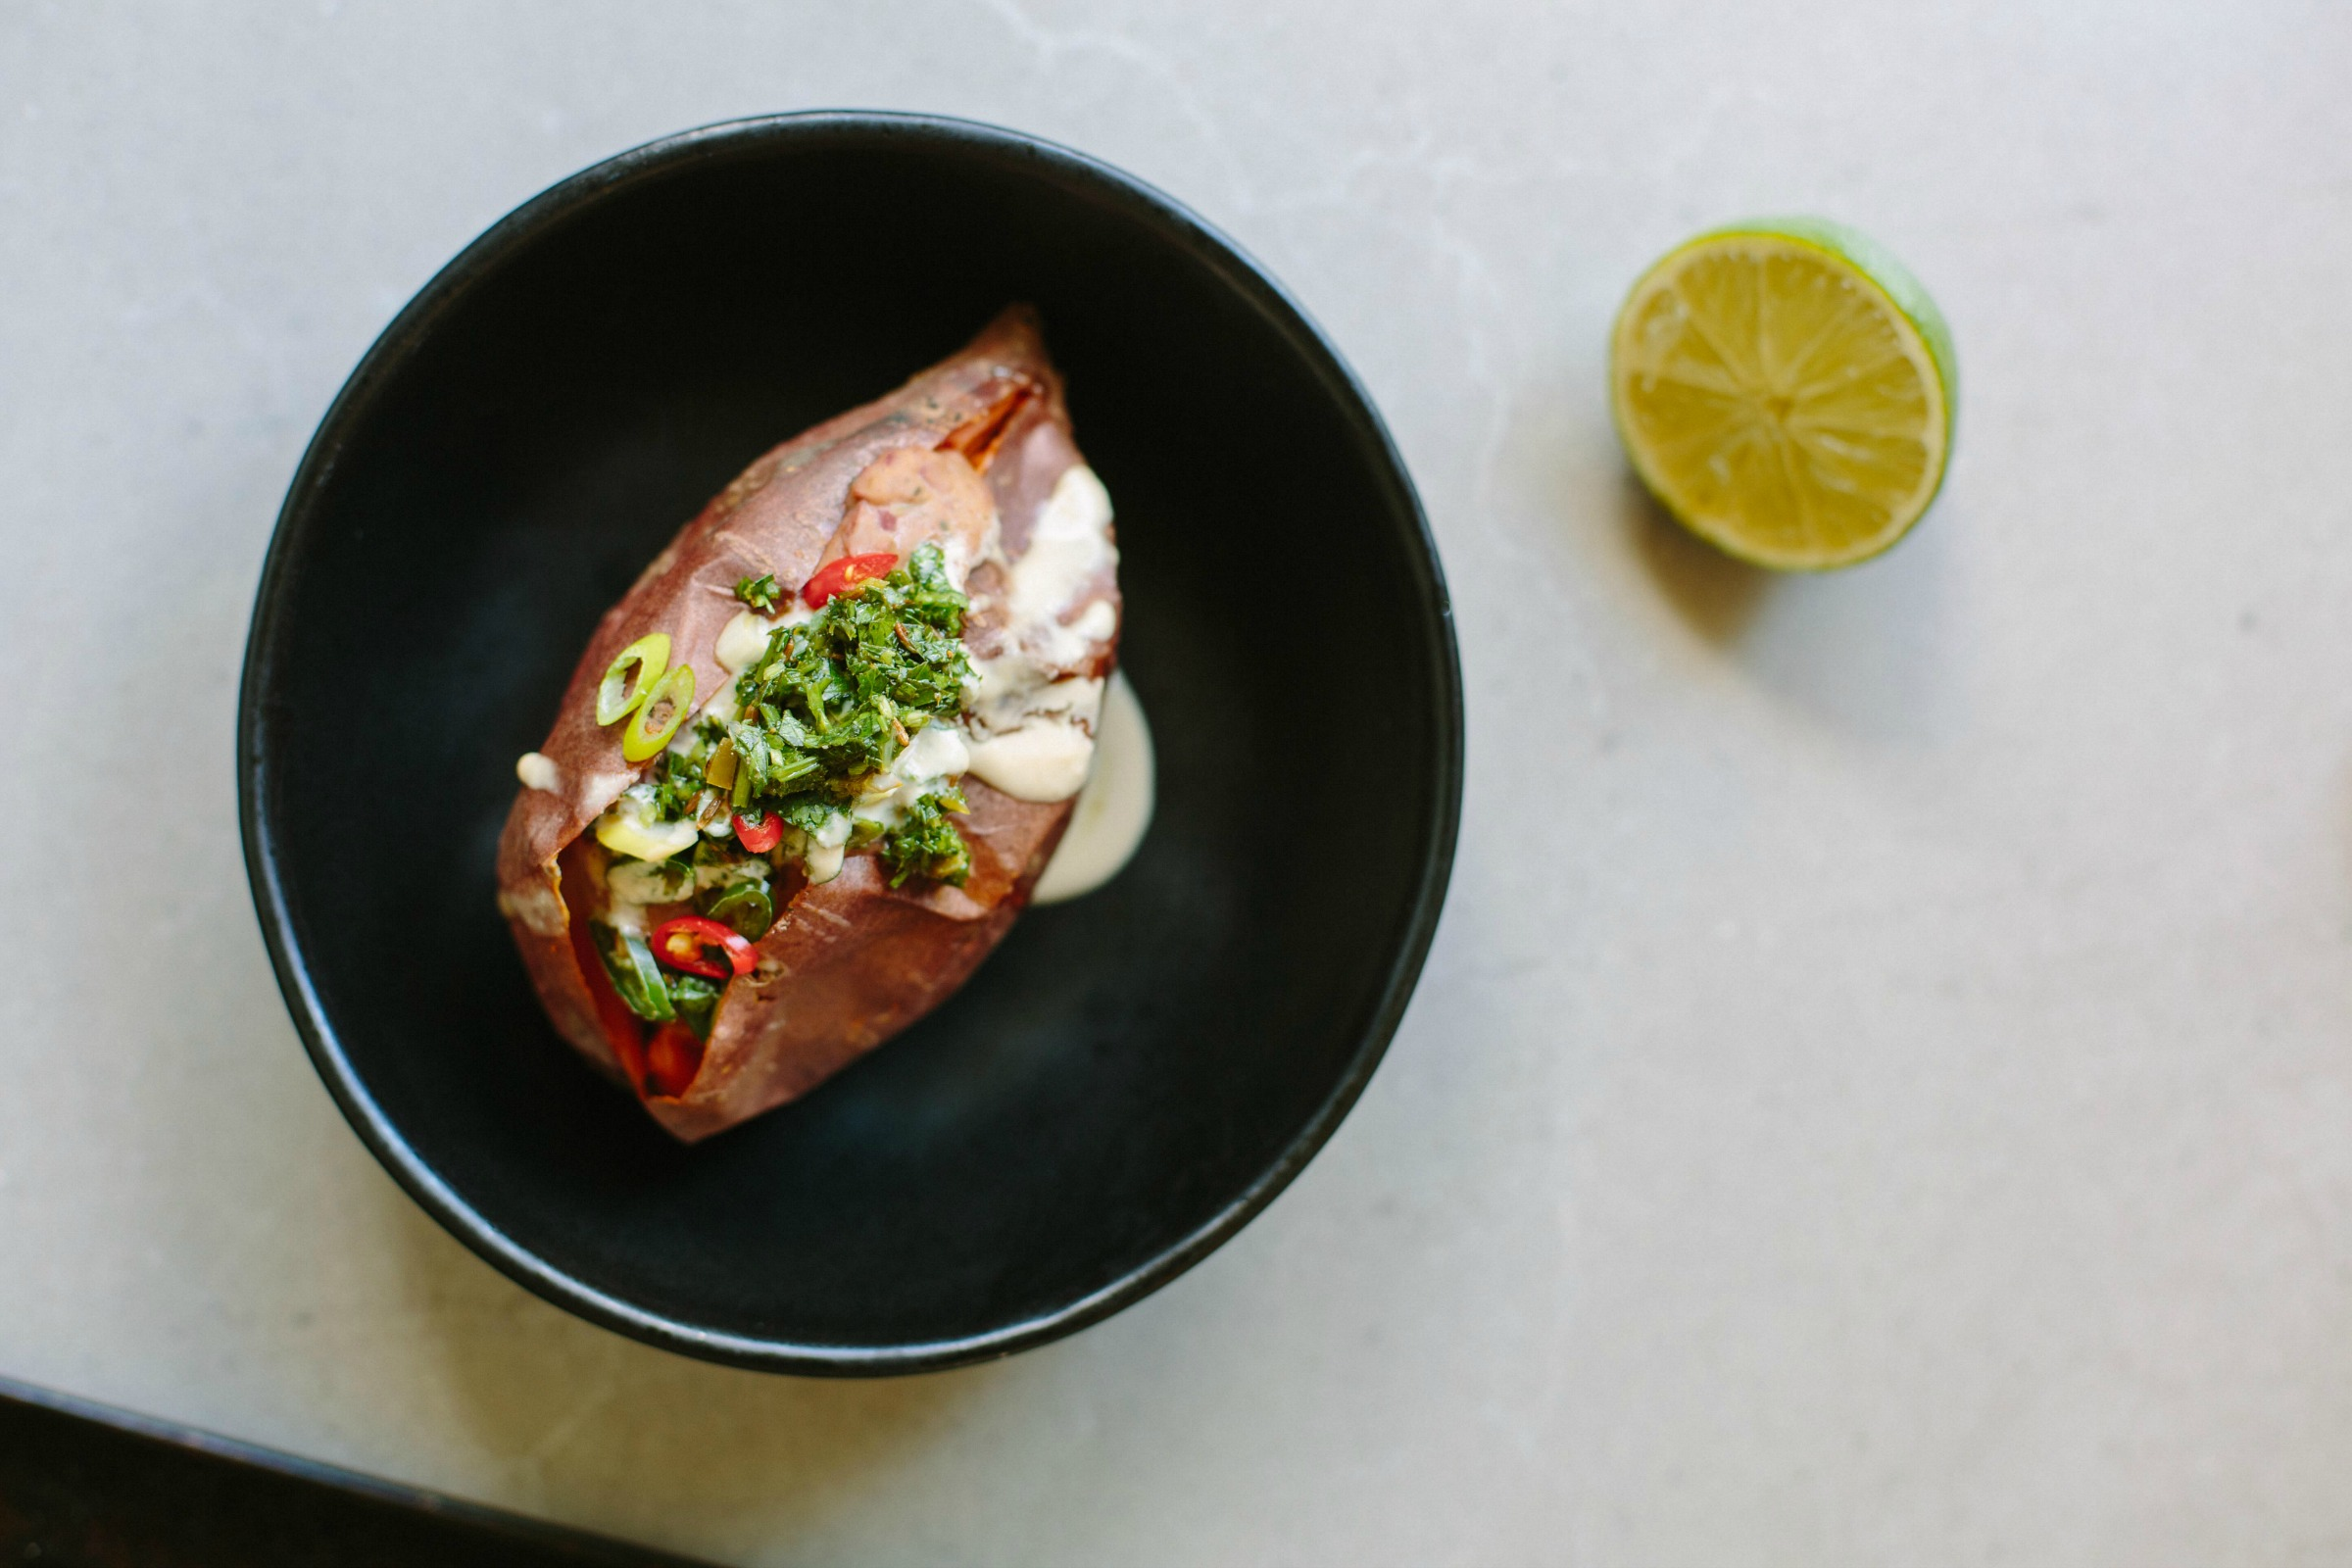 Chipotle, Bean + Lime Stuffed Sweet Potatoes with Herb Salsa | My Darling Lemon Thyme